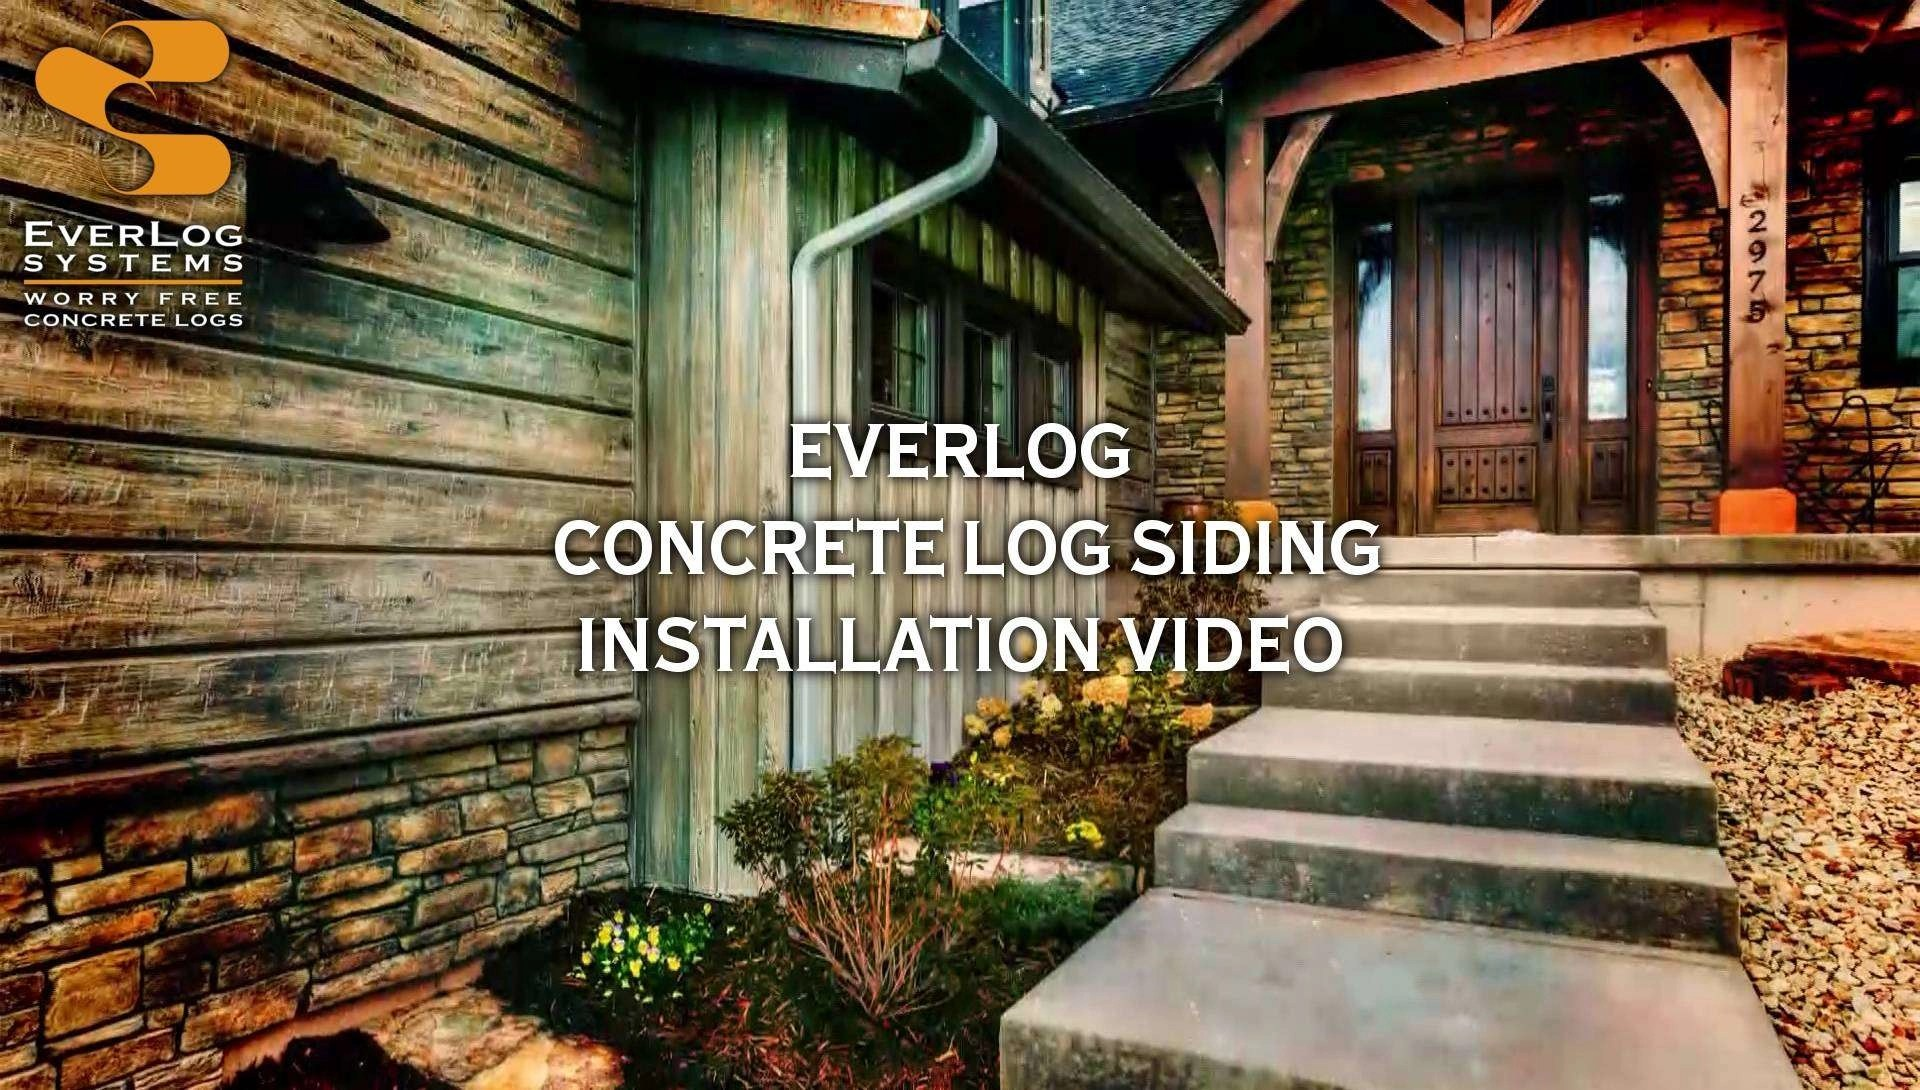 Soulful Everlog Siding Installation Video Everlog Concrete Log Siding By Everlog Systems Vinyl Log Siding Manufacturers Vinyl Log Siding Ebay houzz-02 Vinyl Log Siding